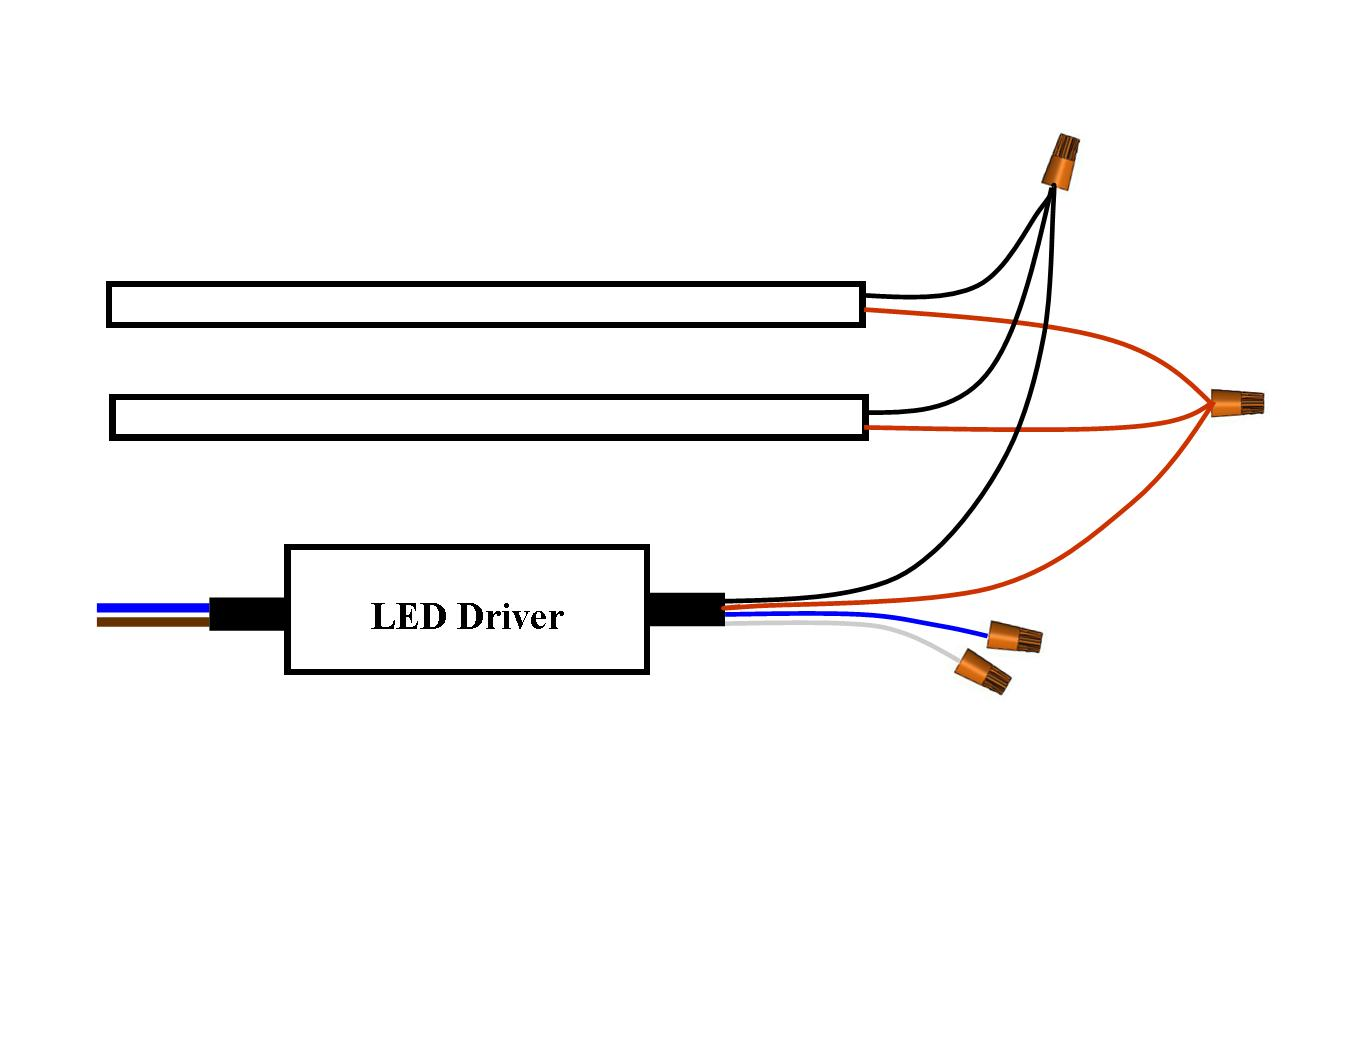 Pleasing Led Driver Wiring Diagram Wiring Library Wiring Digital Resources Anistprontobusorg